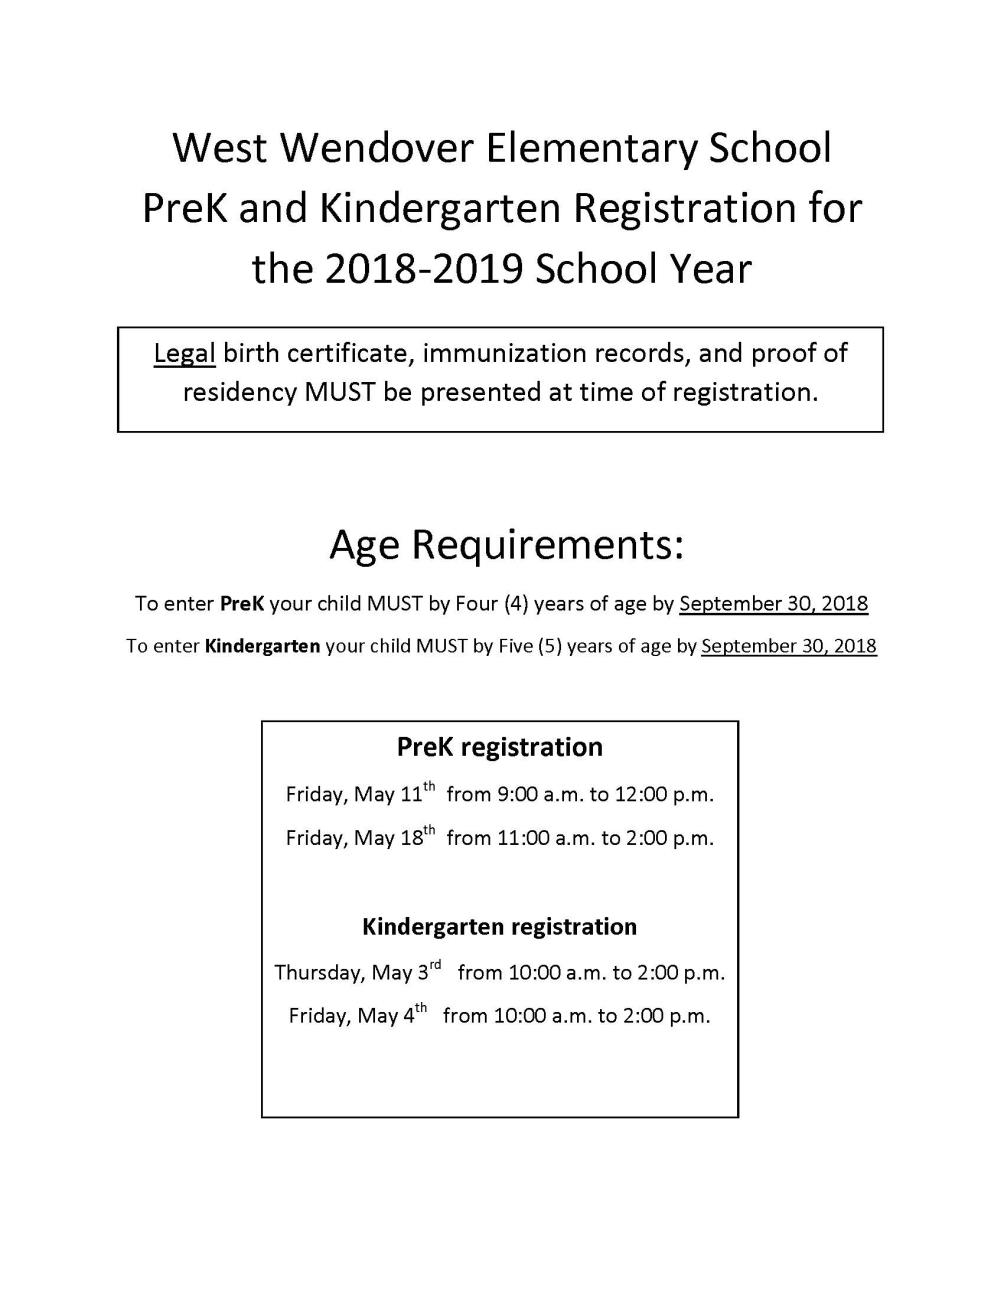 WWES PreK and Kindergarten Registration 2018-2019 School Year